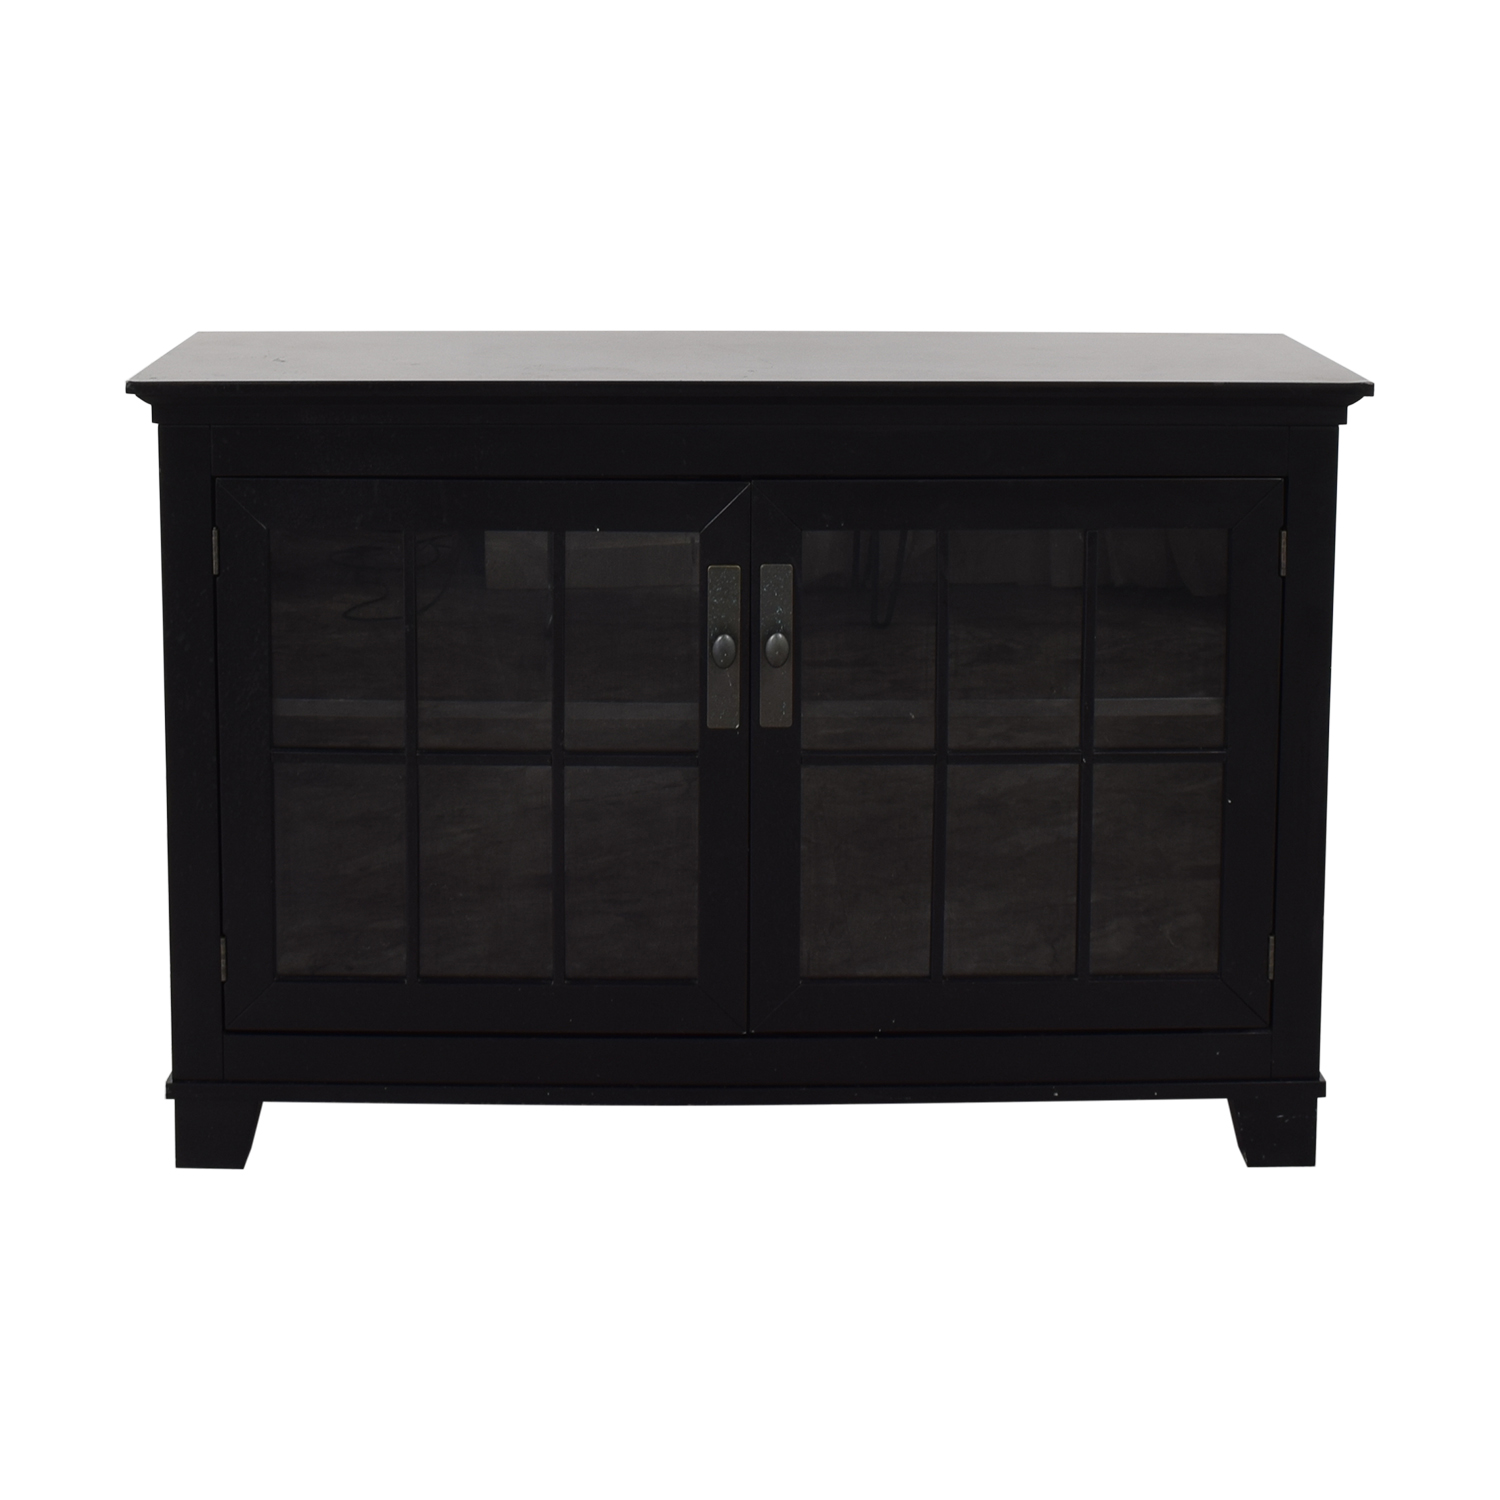 shop Crate & Barrel Buffet Cabinet Crate & Barrel Storage